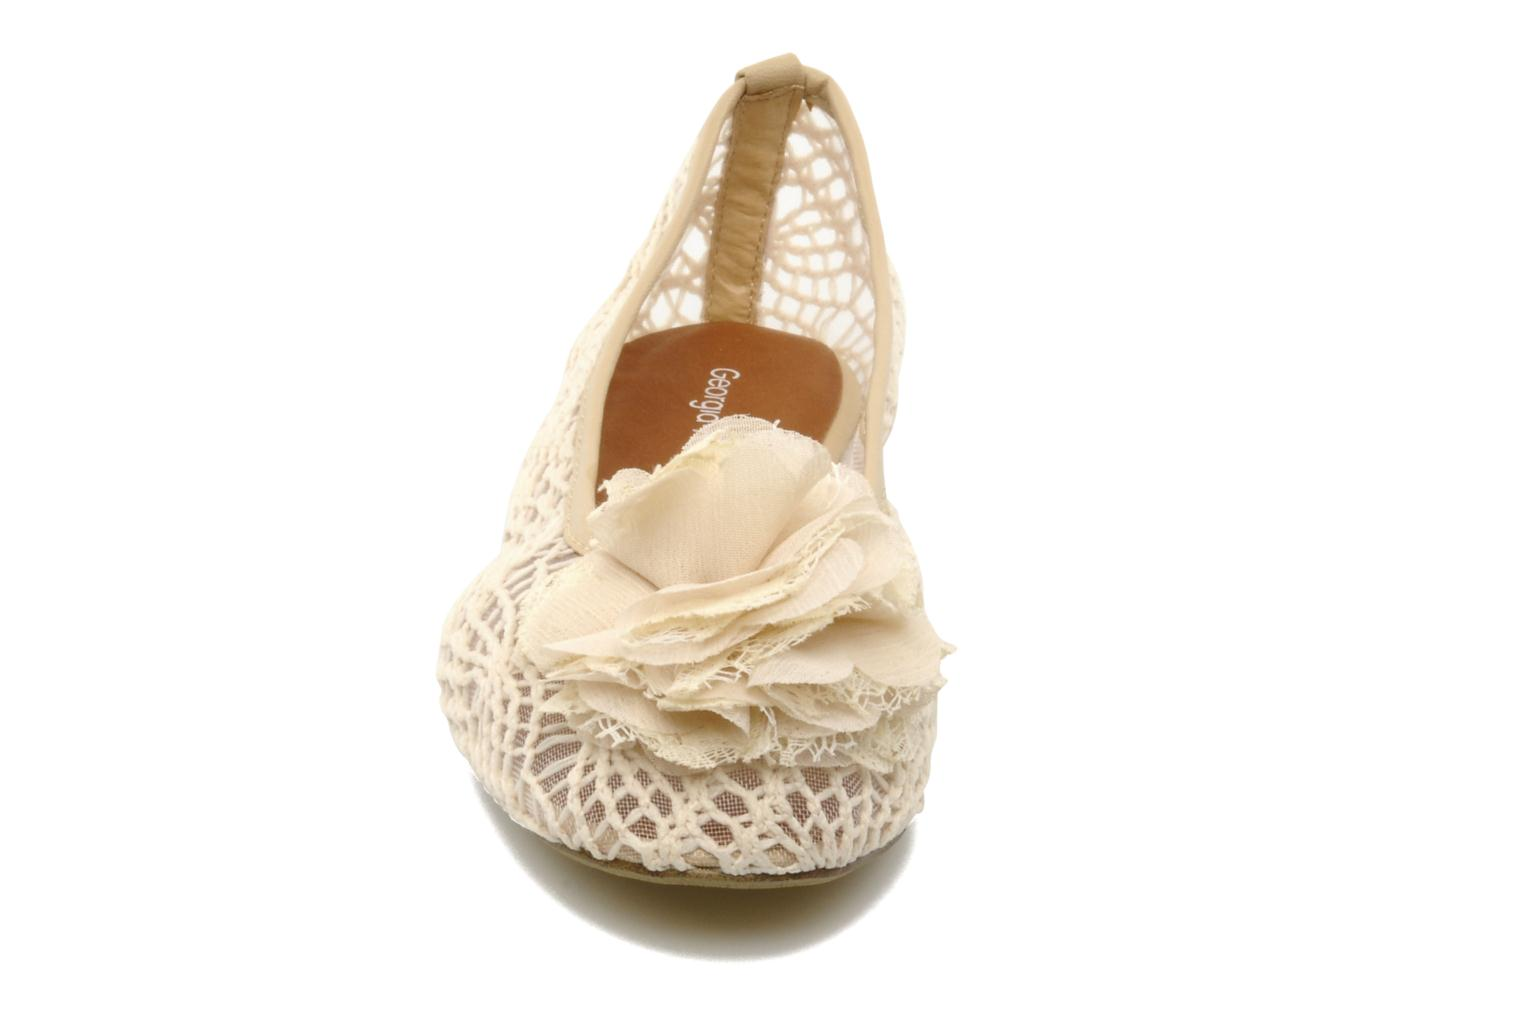 Ballerina's Georgia Rose Furi Beige model